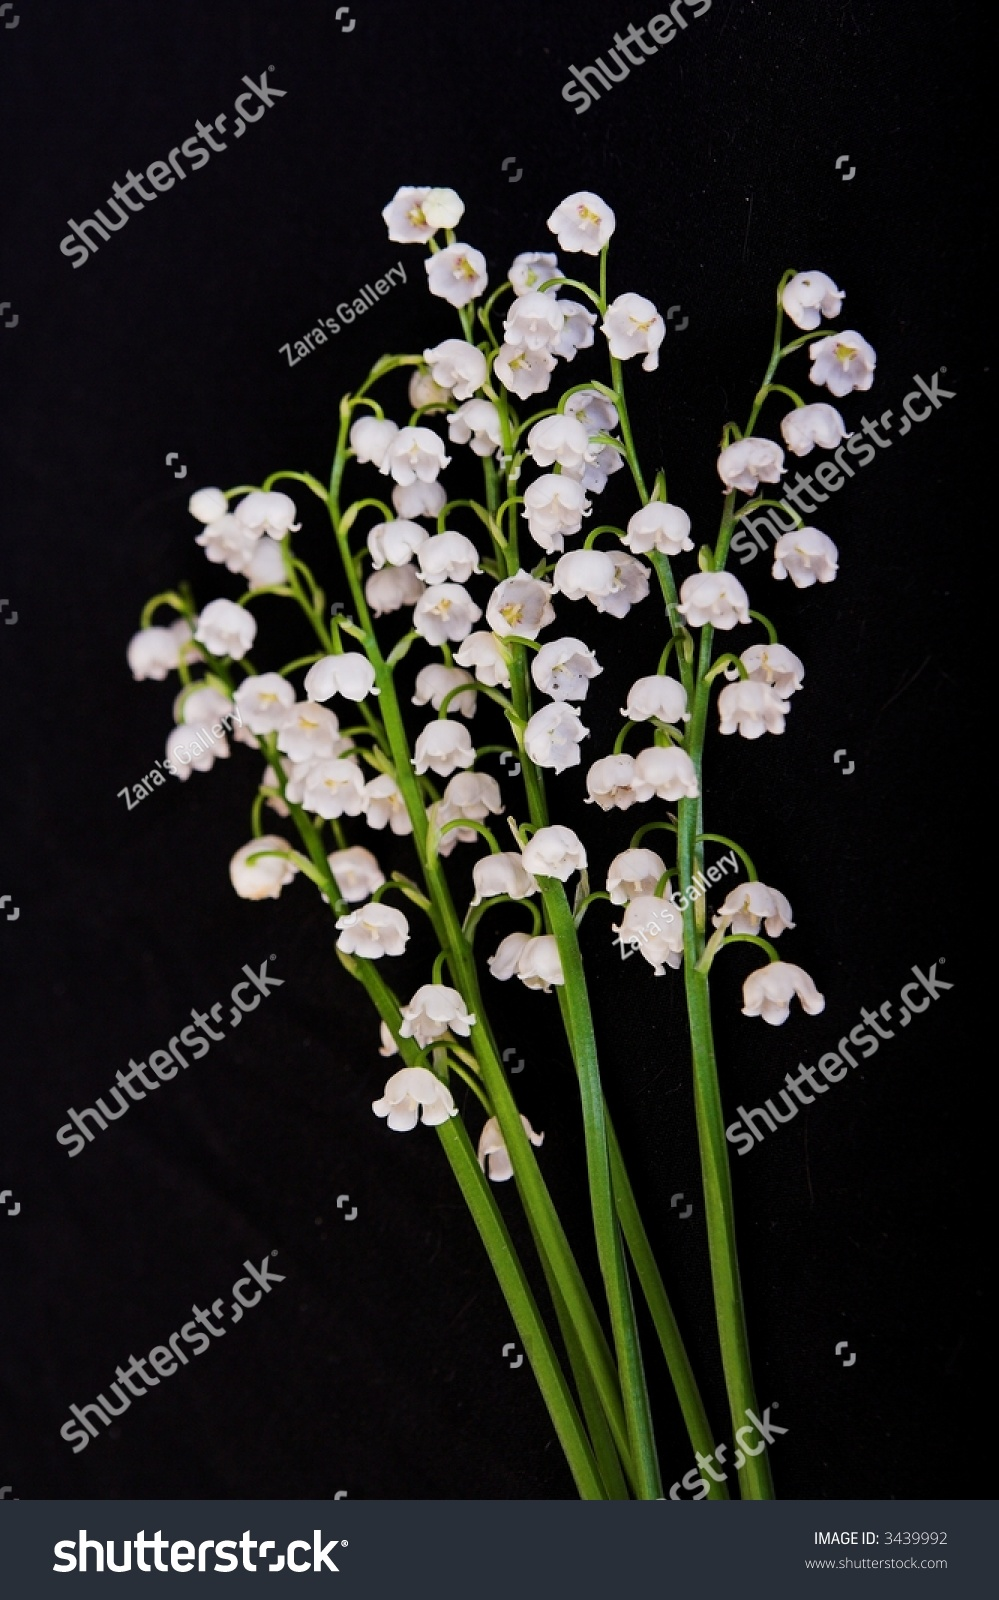 Aspidistra lilyofthevalley white flowers isolated on stock photo aspidistra lily of the valley white flowers isolated on black background aspidistra lilyofthevalley izmirmasajfo Gallery